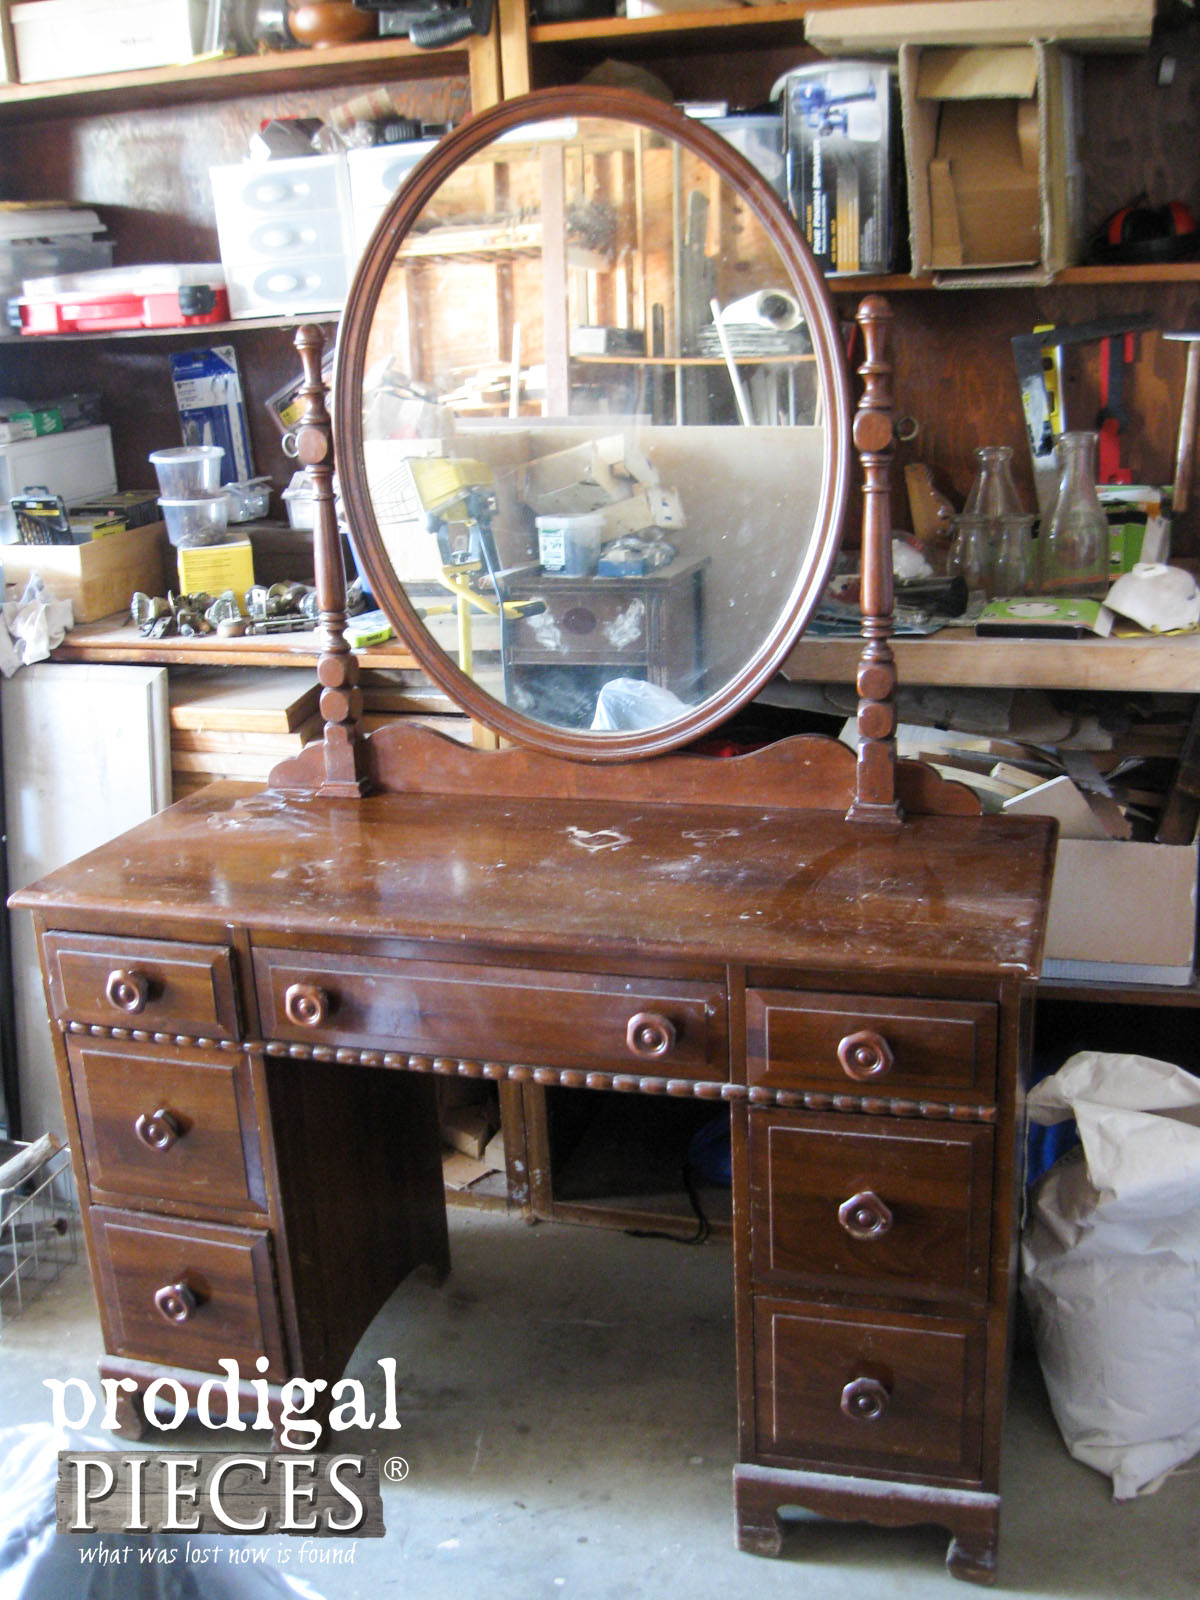 Vintage Kroehler Vanity Before Whitewashed Makeover by Prodigal Pieces |  www.prodigalpieces.com - Vintage Vanity With French Country Cottage Style - Prodigal Pieces